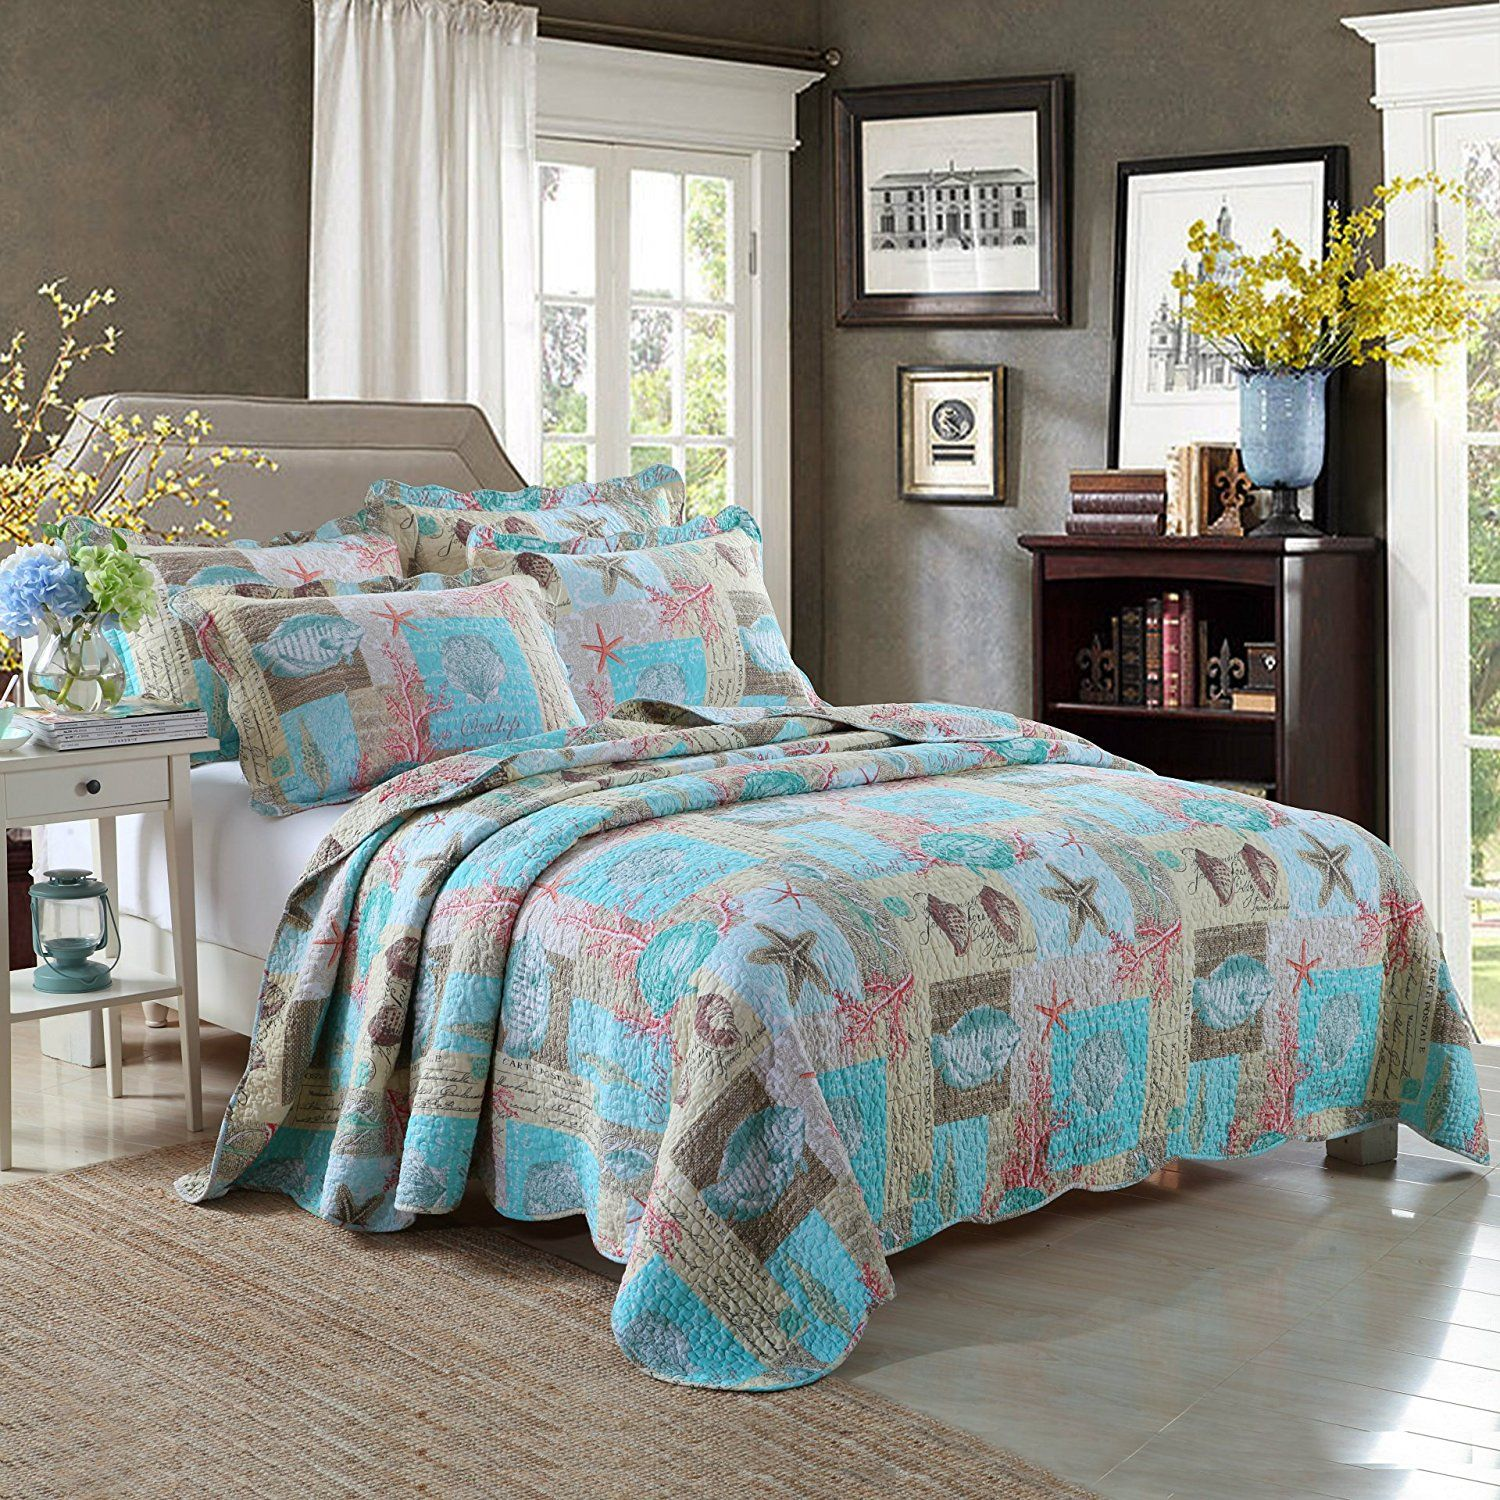 bedding comforters twin beach themed coastal adults sea living bedroom decor comforter for quilts girl ocean ideas mens